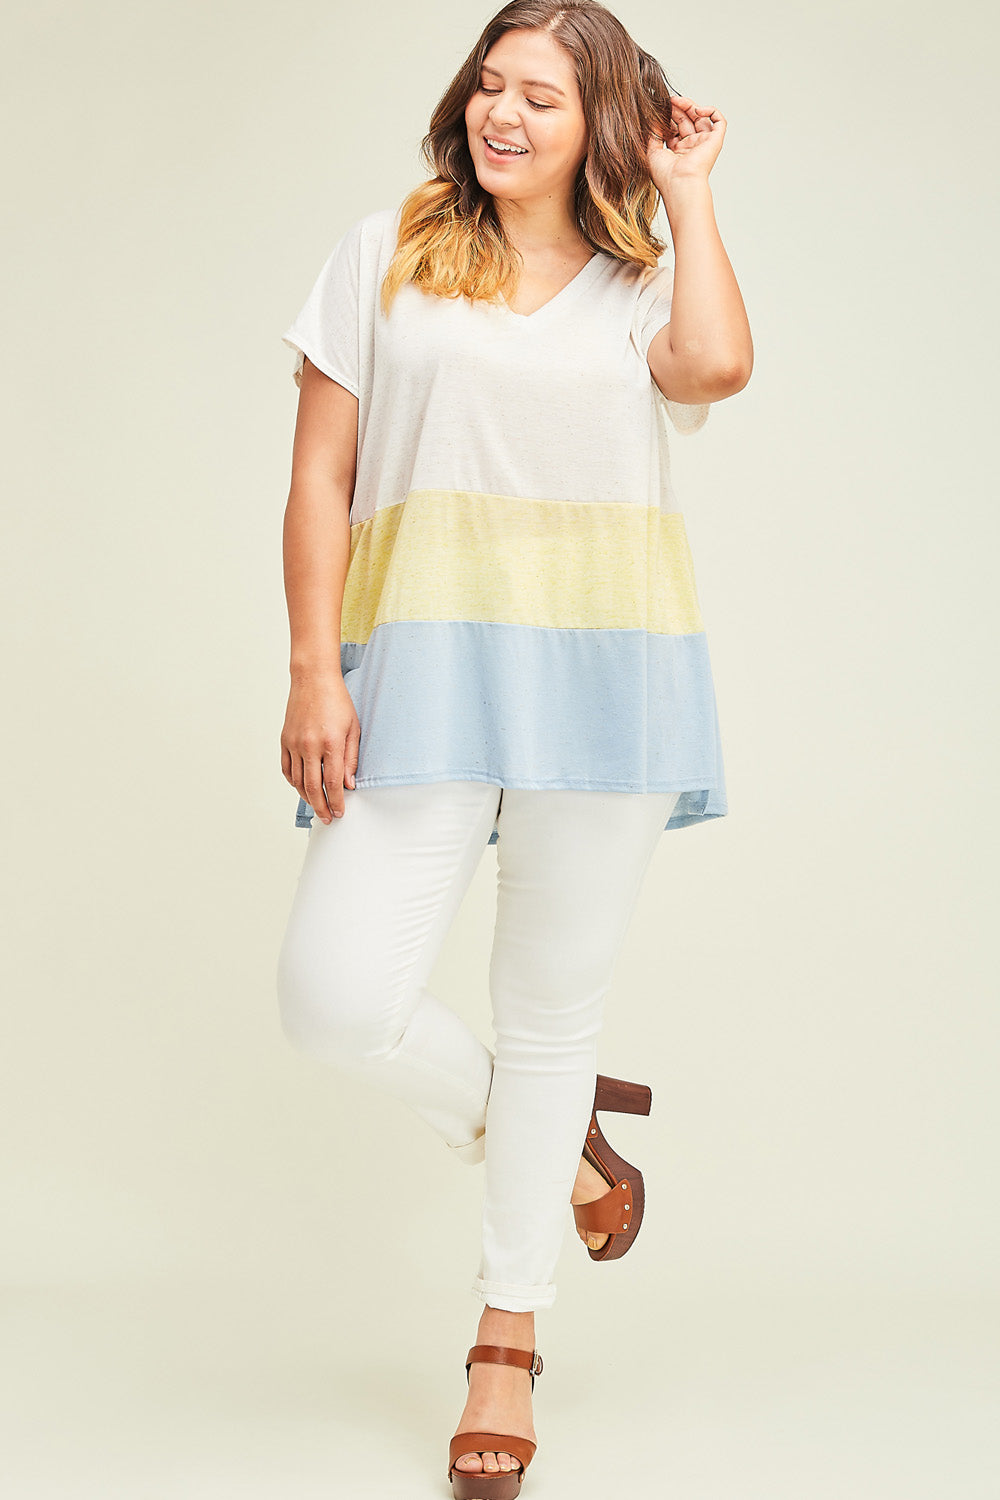 Jenny From the Color-Block Top